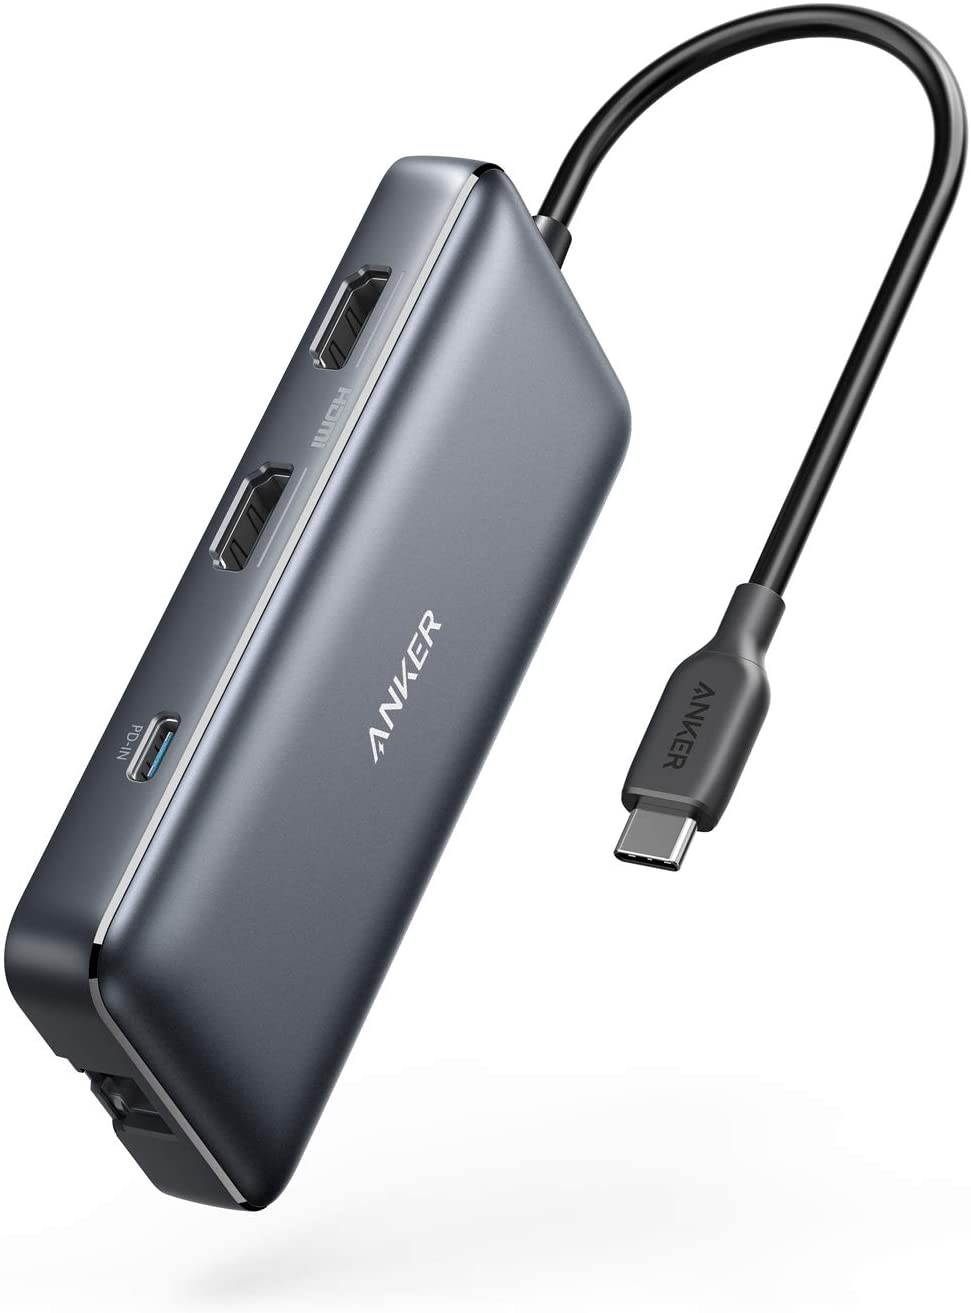 Anker USB-C Dock Hub Homeoffice Büro